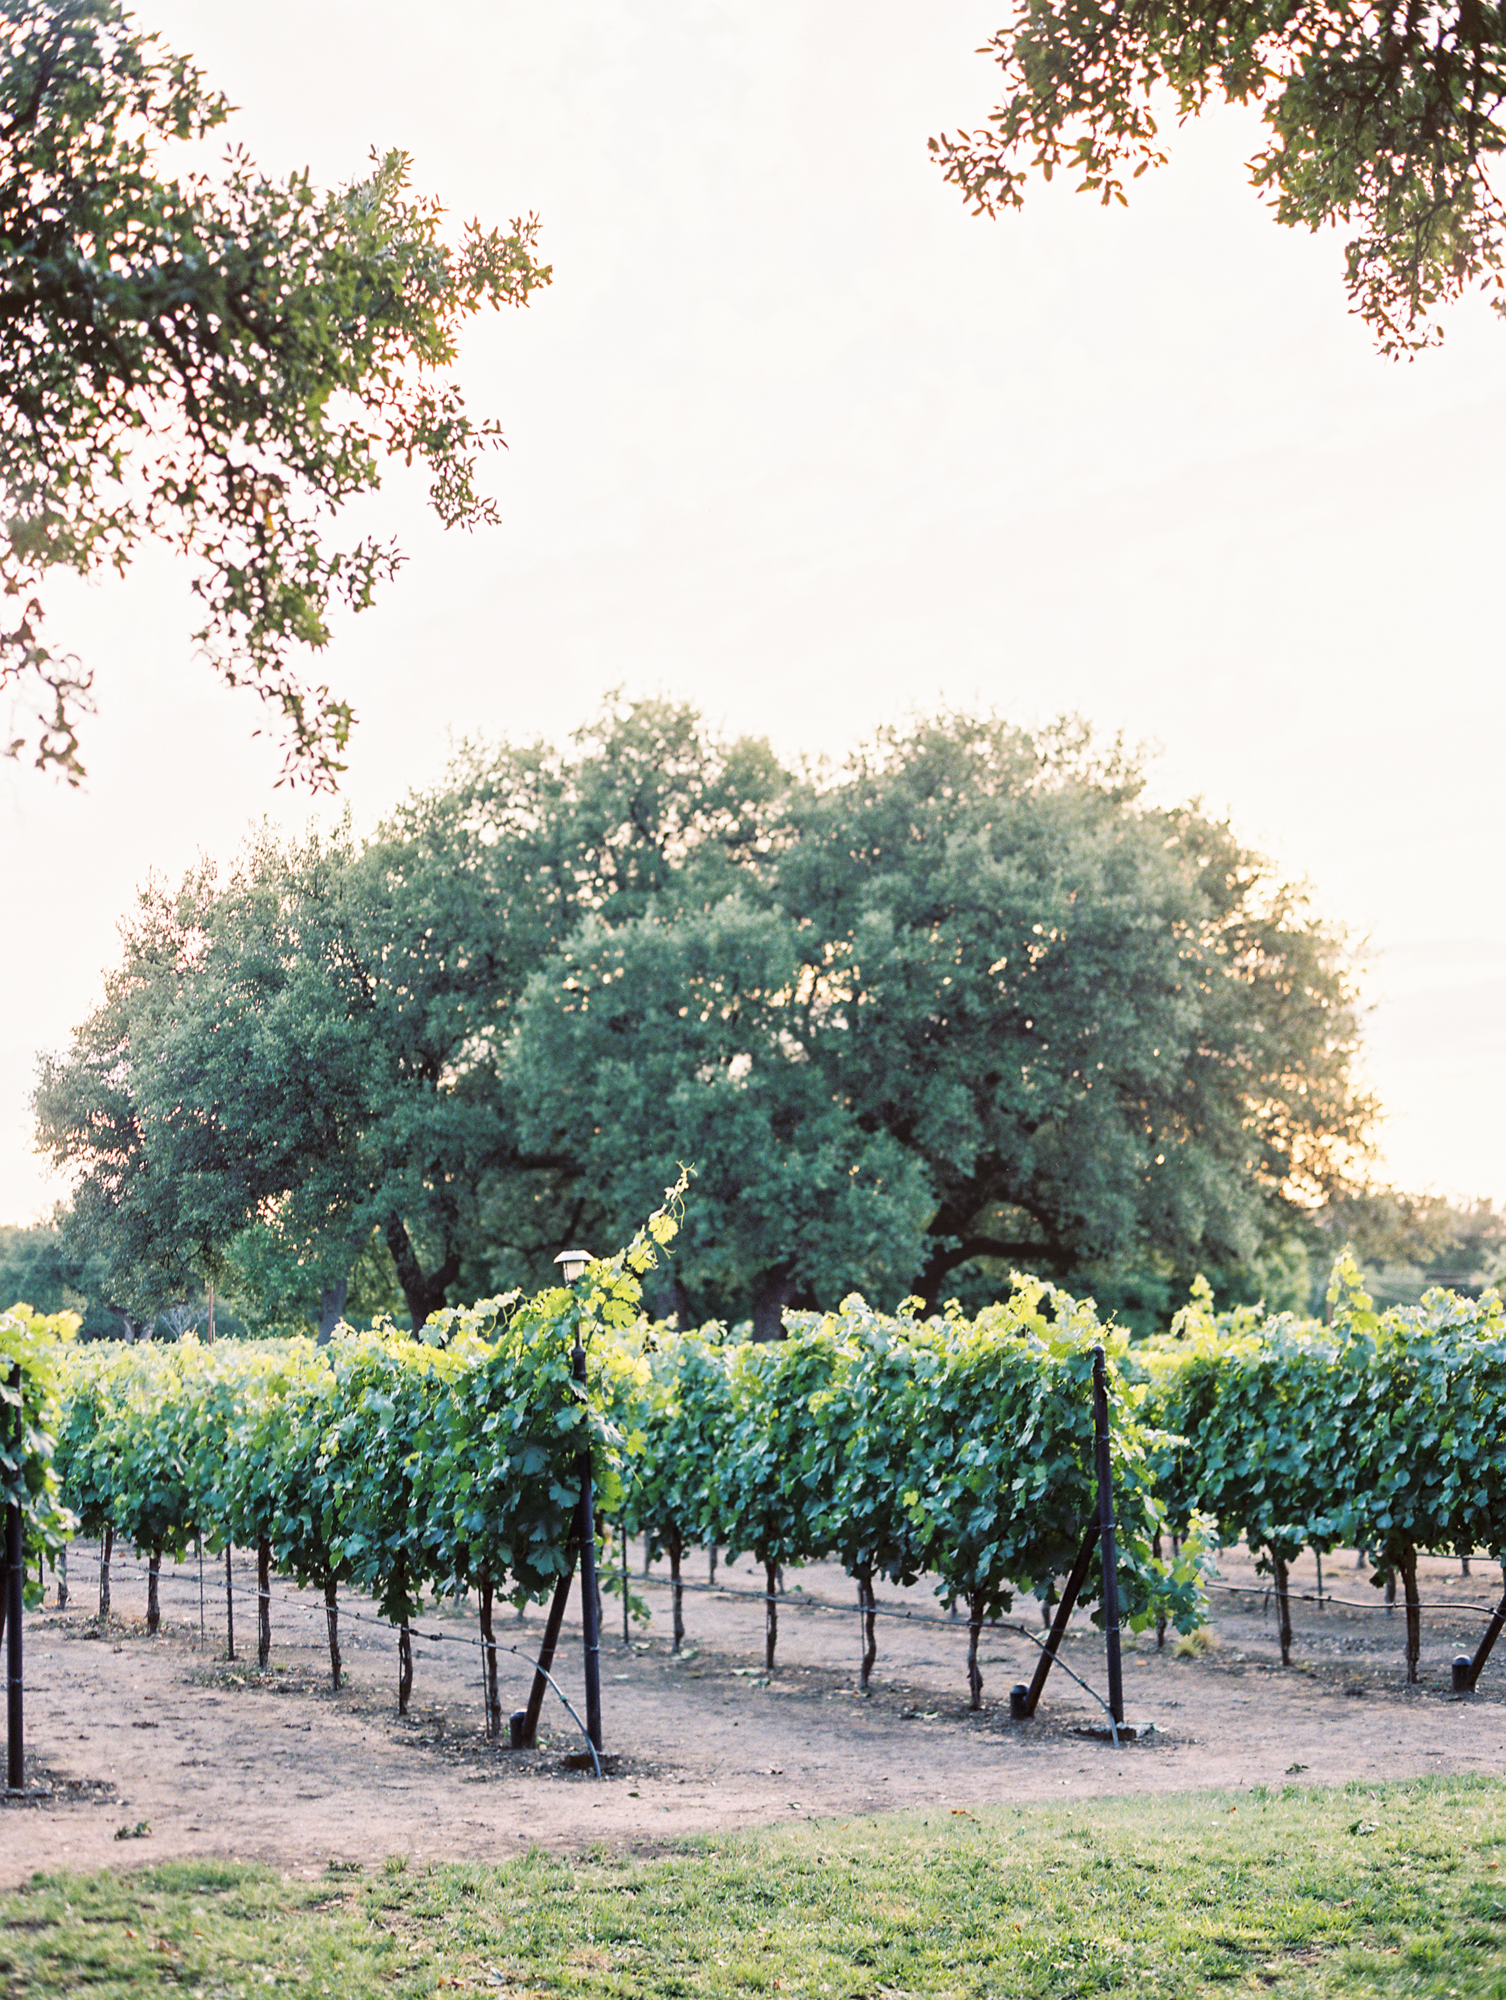 Elegant Spring Vineyard Wedding | Film Wedding Photographer | Austin Wedding Photographer | Texas Wedding Venue, Chapel In The Vineyard in Christoval, TX | Britni Dean Photography // britnidean.com